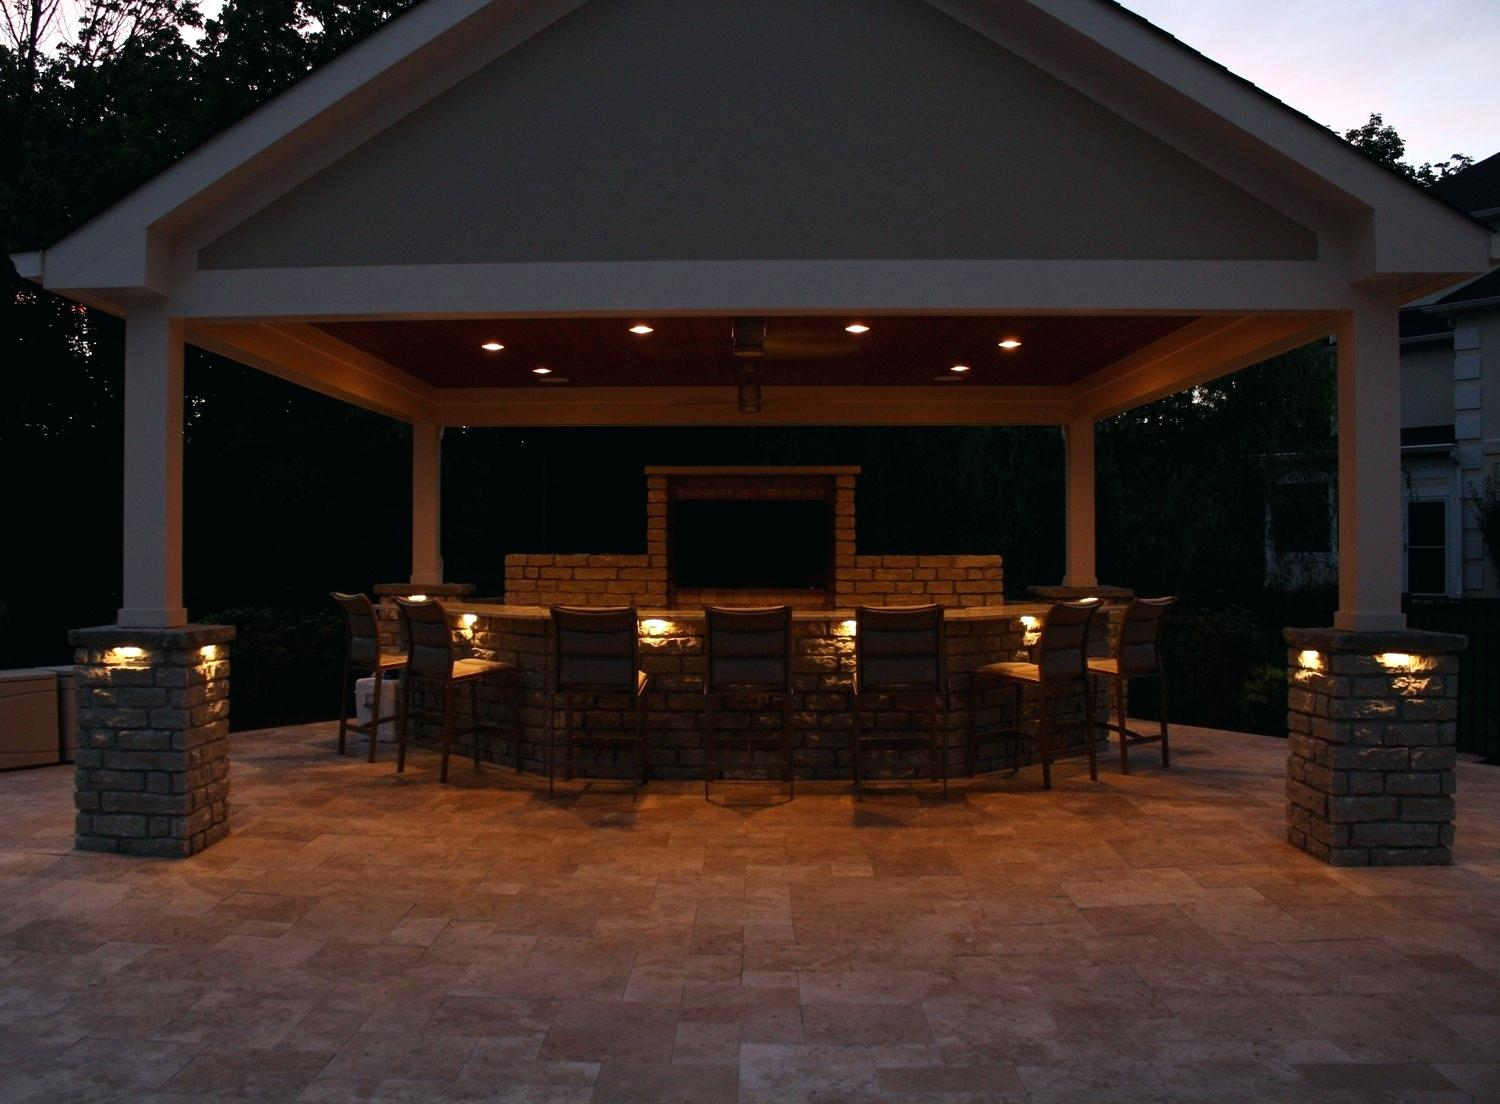 Accent lights-Spring Hill FL Outdoor Lighting Installers-We Offer Outdoor Lighting Services, Landscape Lighting, Low Voltage Lighting, Outdoor LED landscape Lighting, Holiday Lighting, Christmas Lighting, Tree Lighting, Canopy Lighting, Residential outdoor Lighting, Commercial outdoor Lighting, Safety Lighting, Path and Garden Lighting, Mini lights and flood lights, Landscape Lighting installation, Outdoor spot lights, Outdoor LED garden Lighting, Dock Lighting, Accent lights, Deck and patio lights, Security lights, Underwater Lighting, Tree upLighting, Outdoor Lighting repair services, and more.